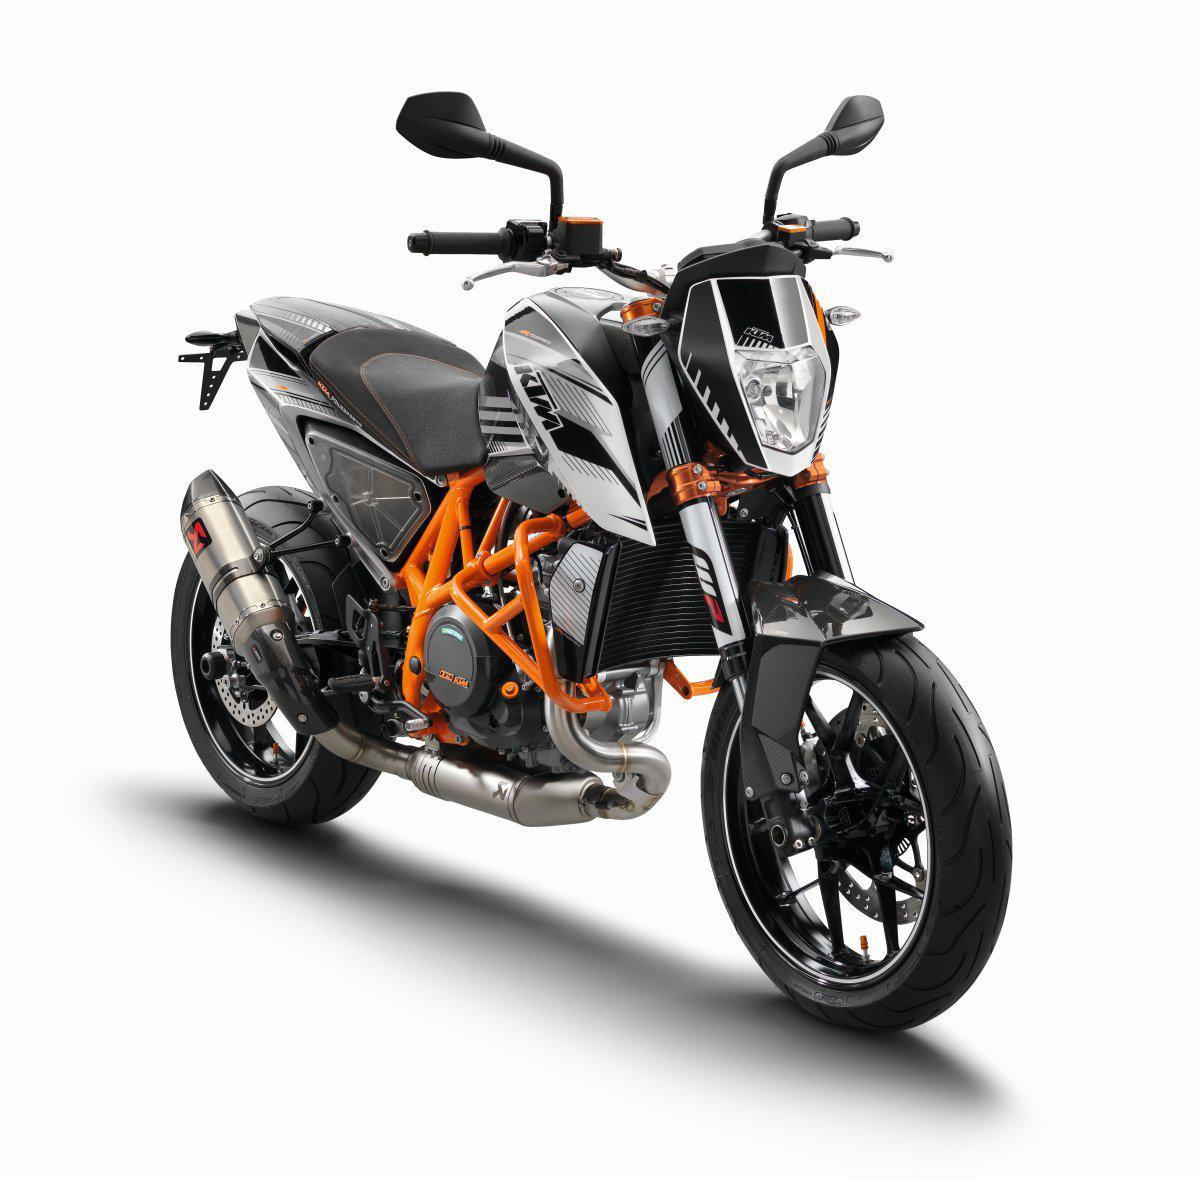 ktm 690 duke 2014 modellnews. Black Bedroom Furniture Sets. Home Design Ideas